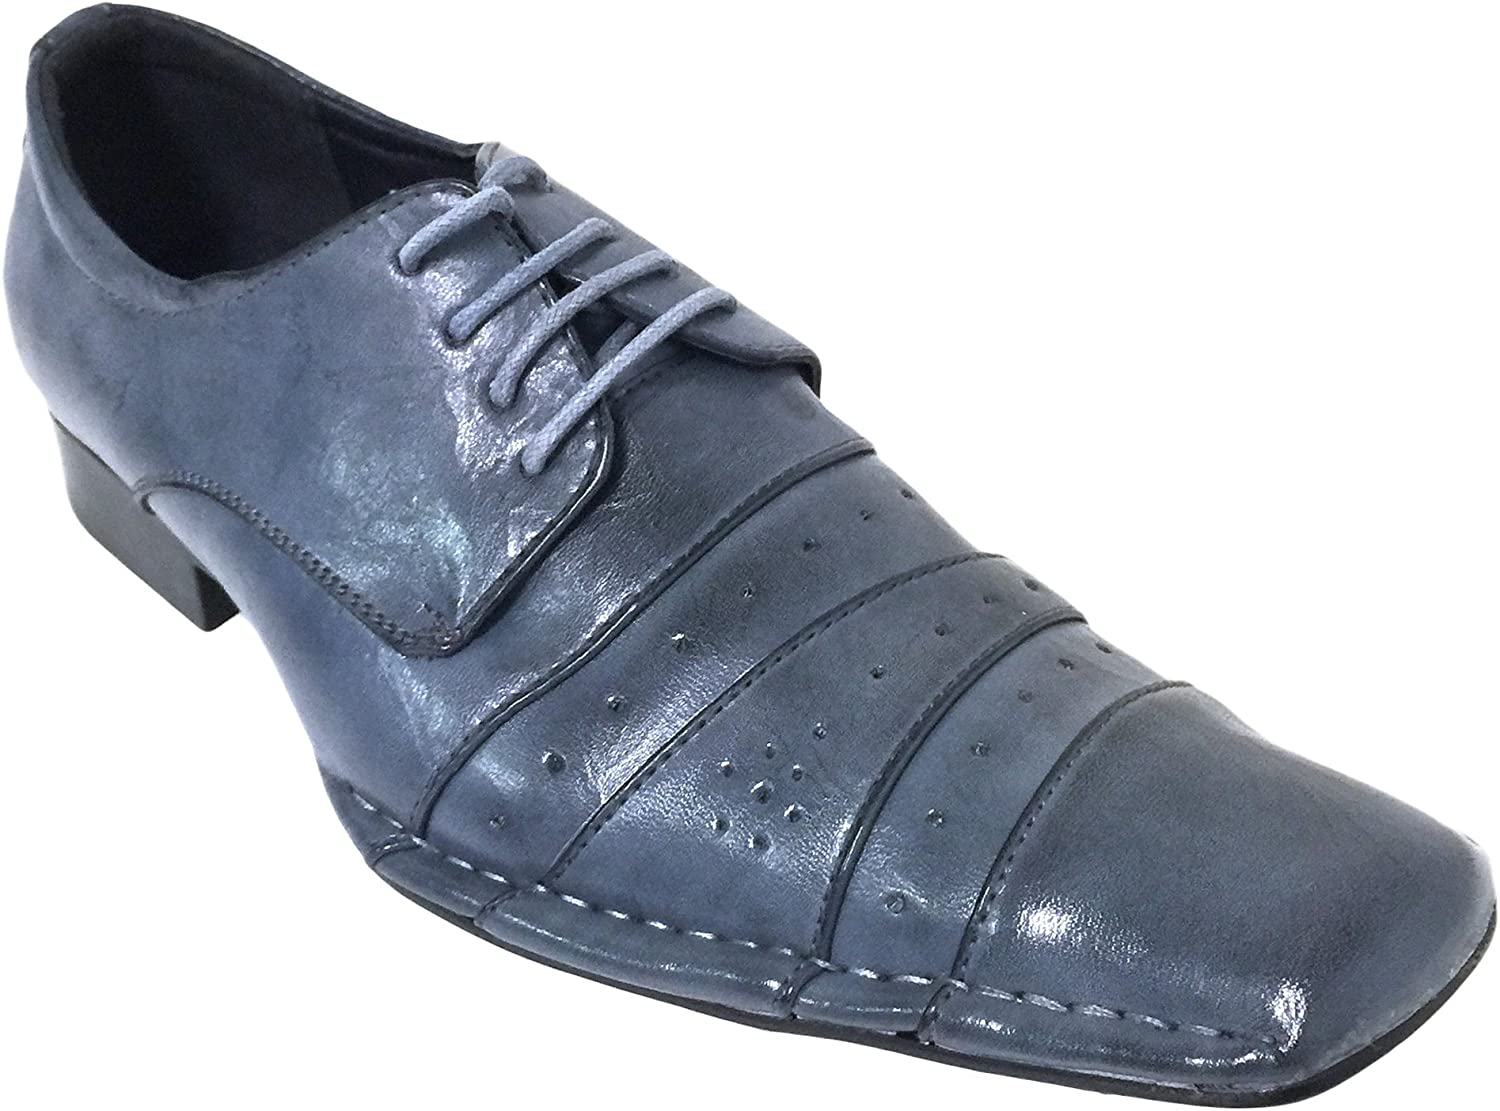 Men's Dress Shoes Italian Style Oxfords Pleated Casual Fashion Lace up Tapered Toe, Black, Blue, Burgundy